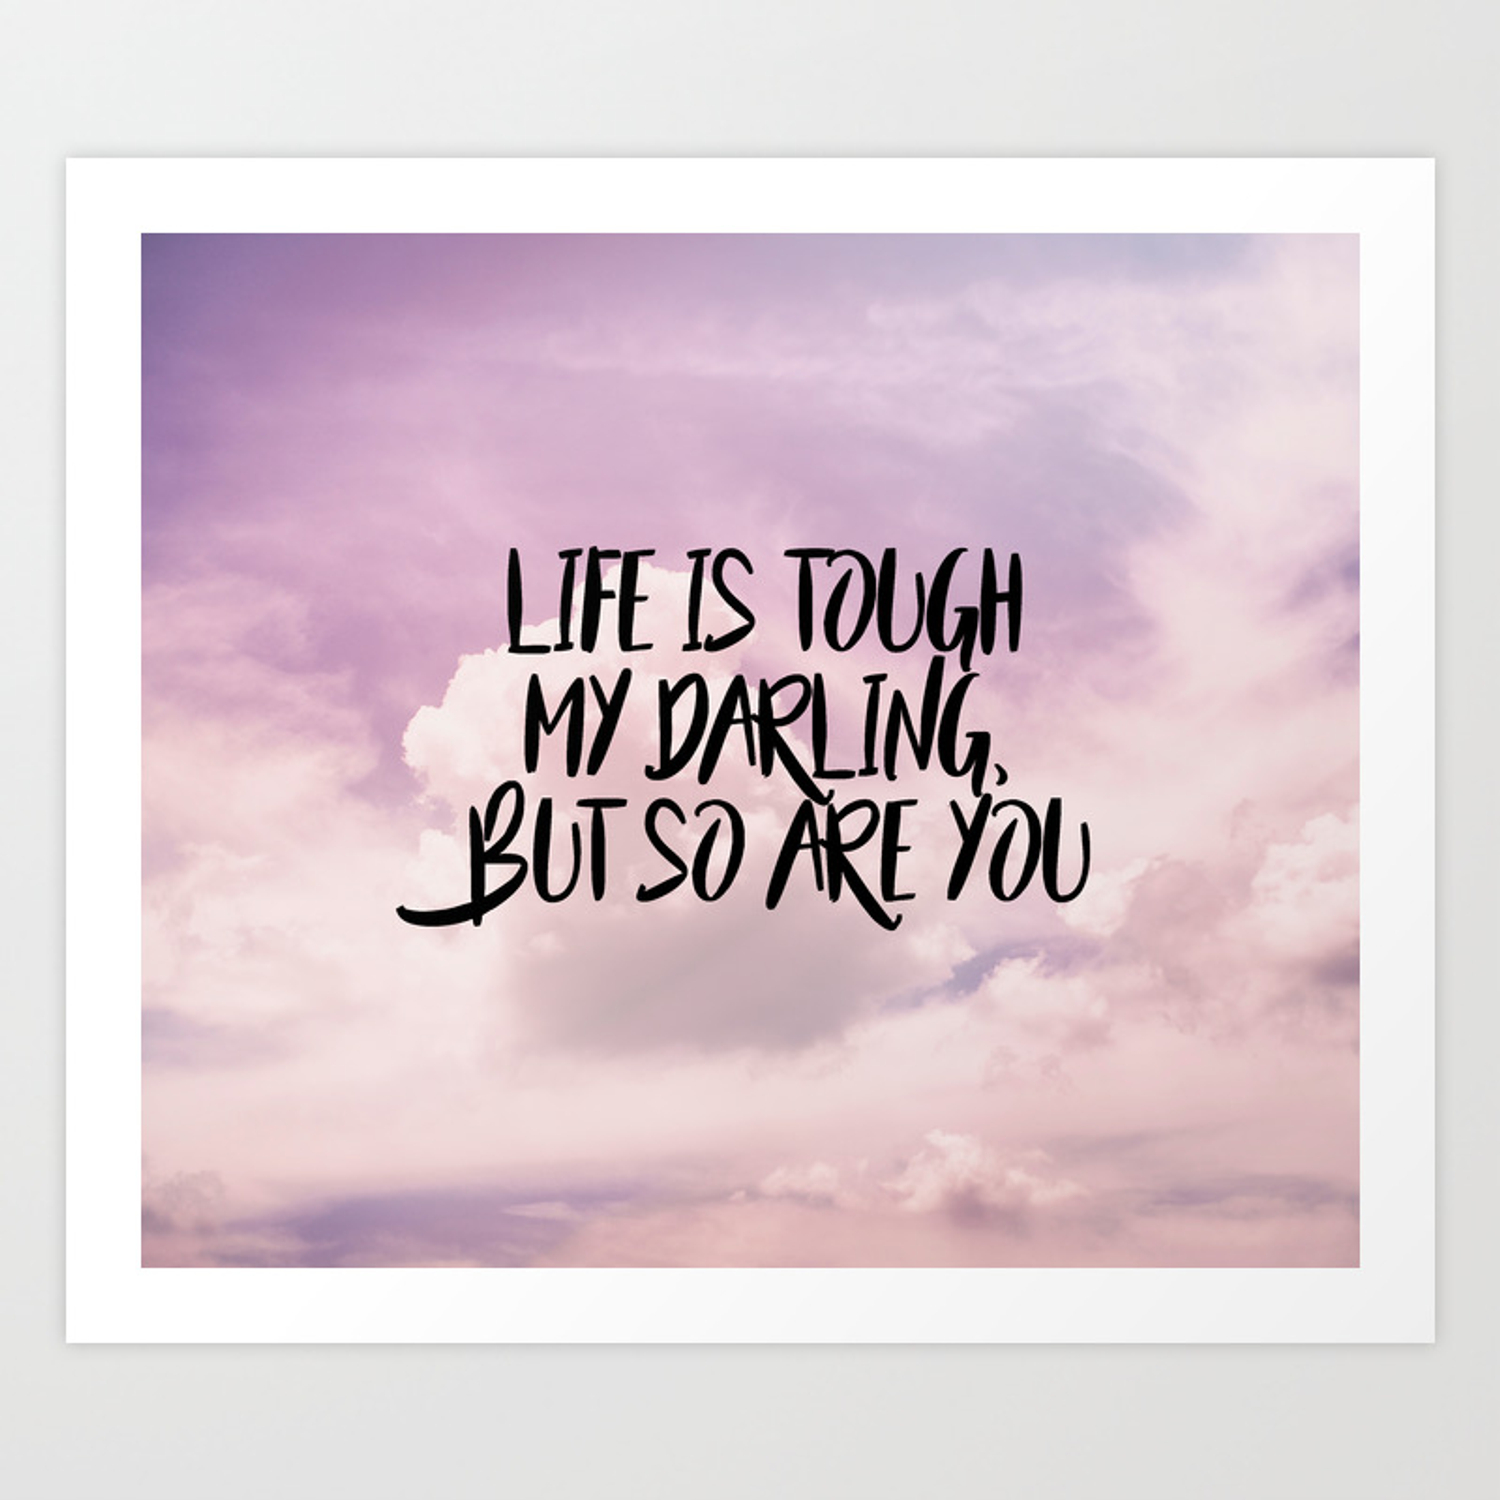 Life Is Tough My Darling But So Are You Motivation Wall Art Bedroom Poster Home